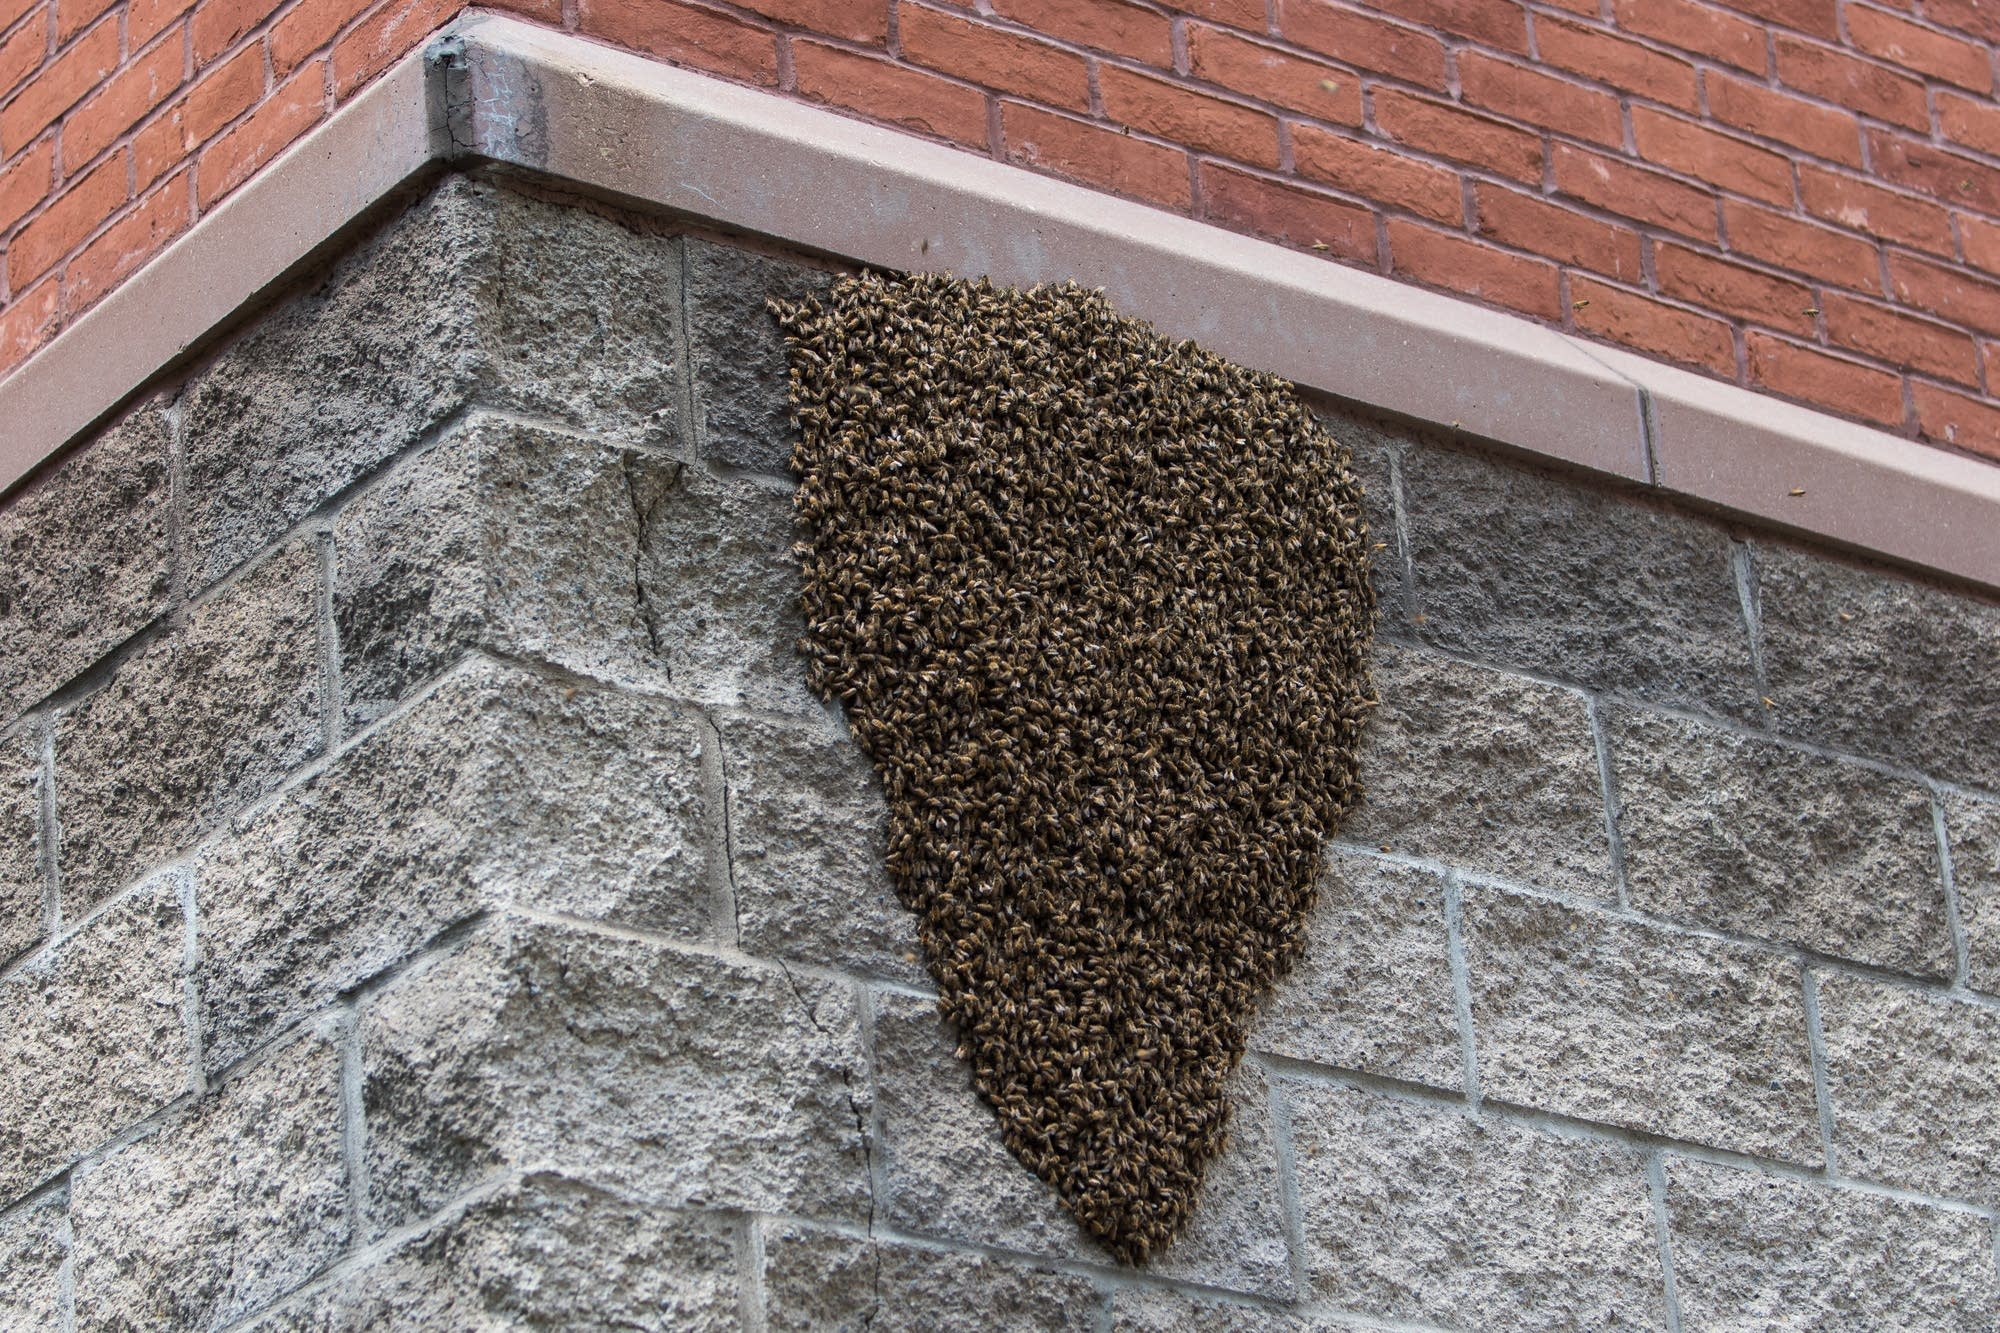 Honey bees swarm together on a wall.